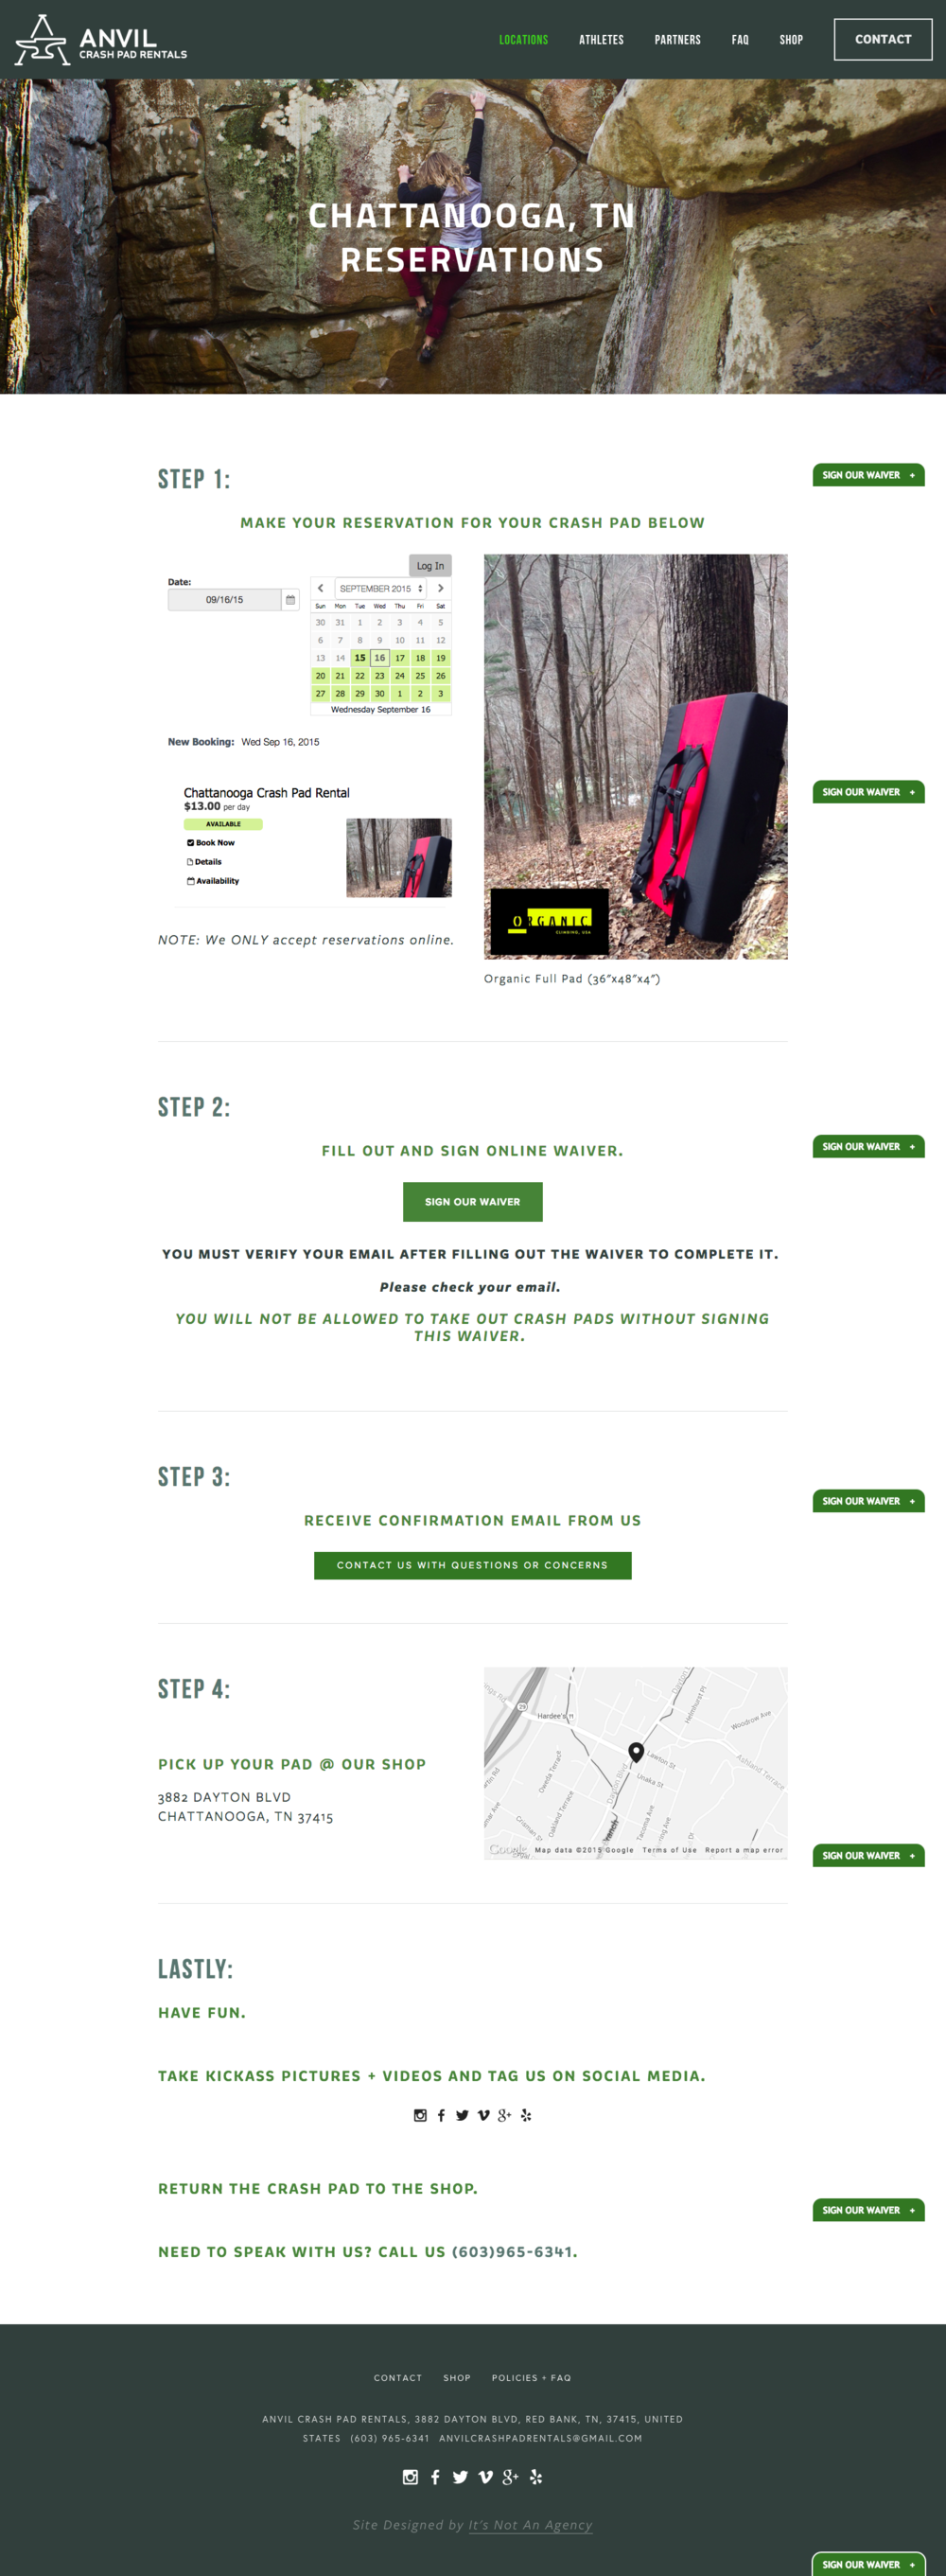 Ecommerce Website Design_Anvil Crash Pad Rentals6.png